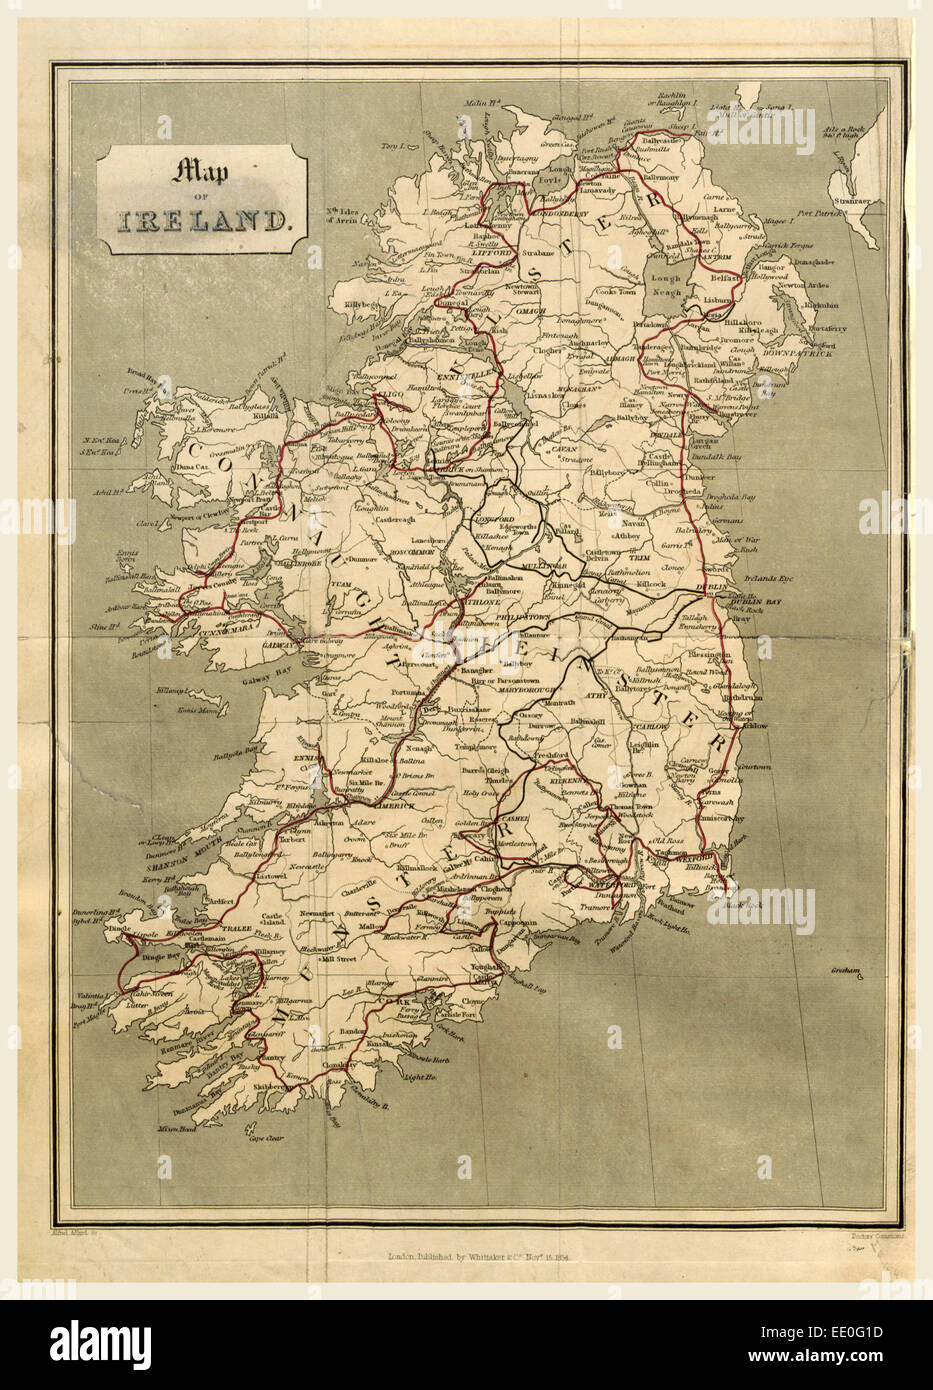 Ireland in 1834, map, 19th century engraving - Stock Image